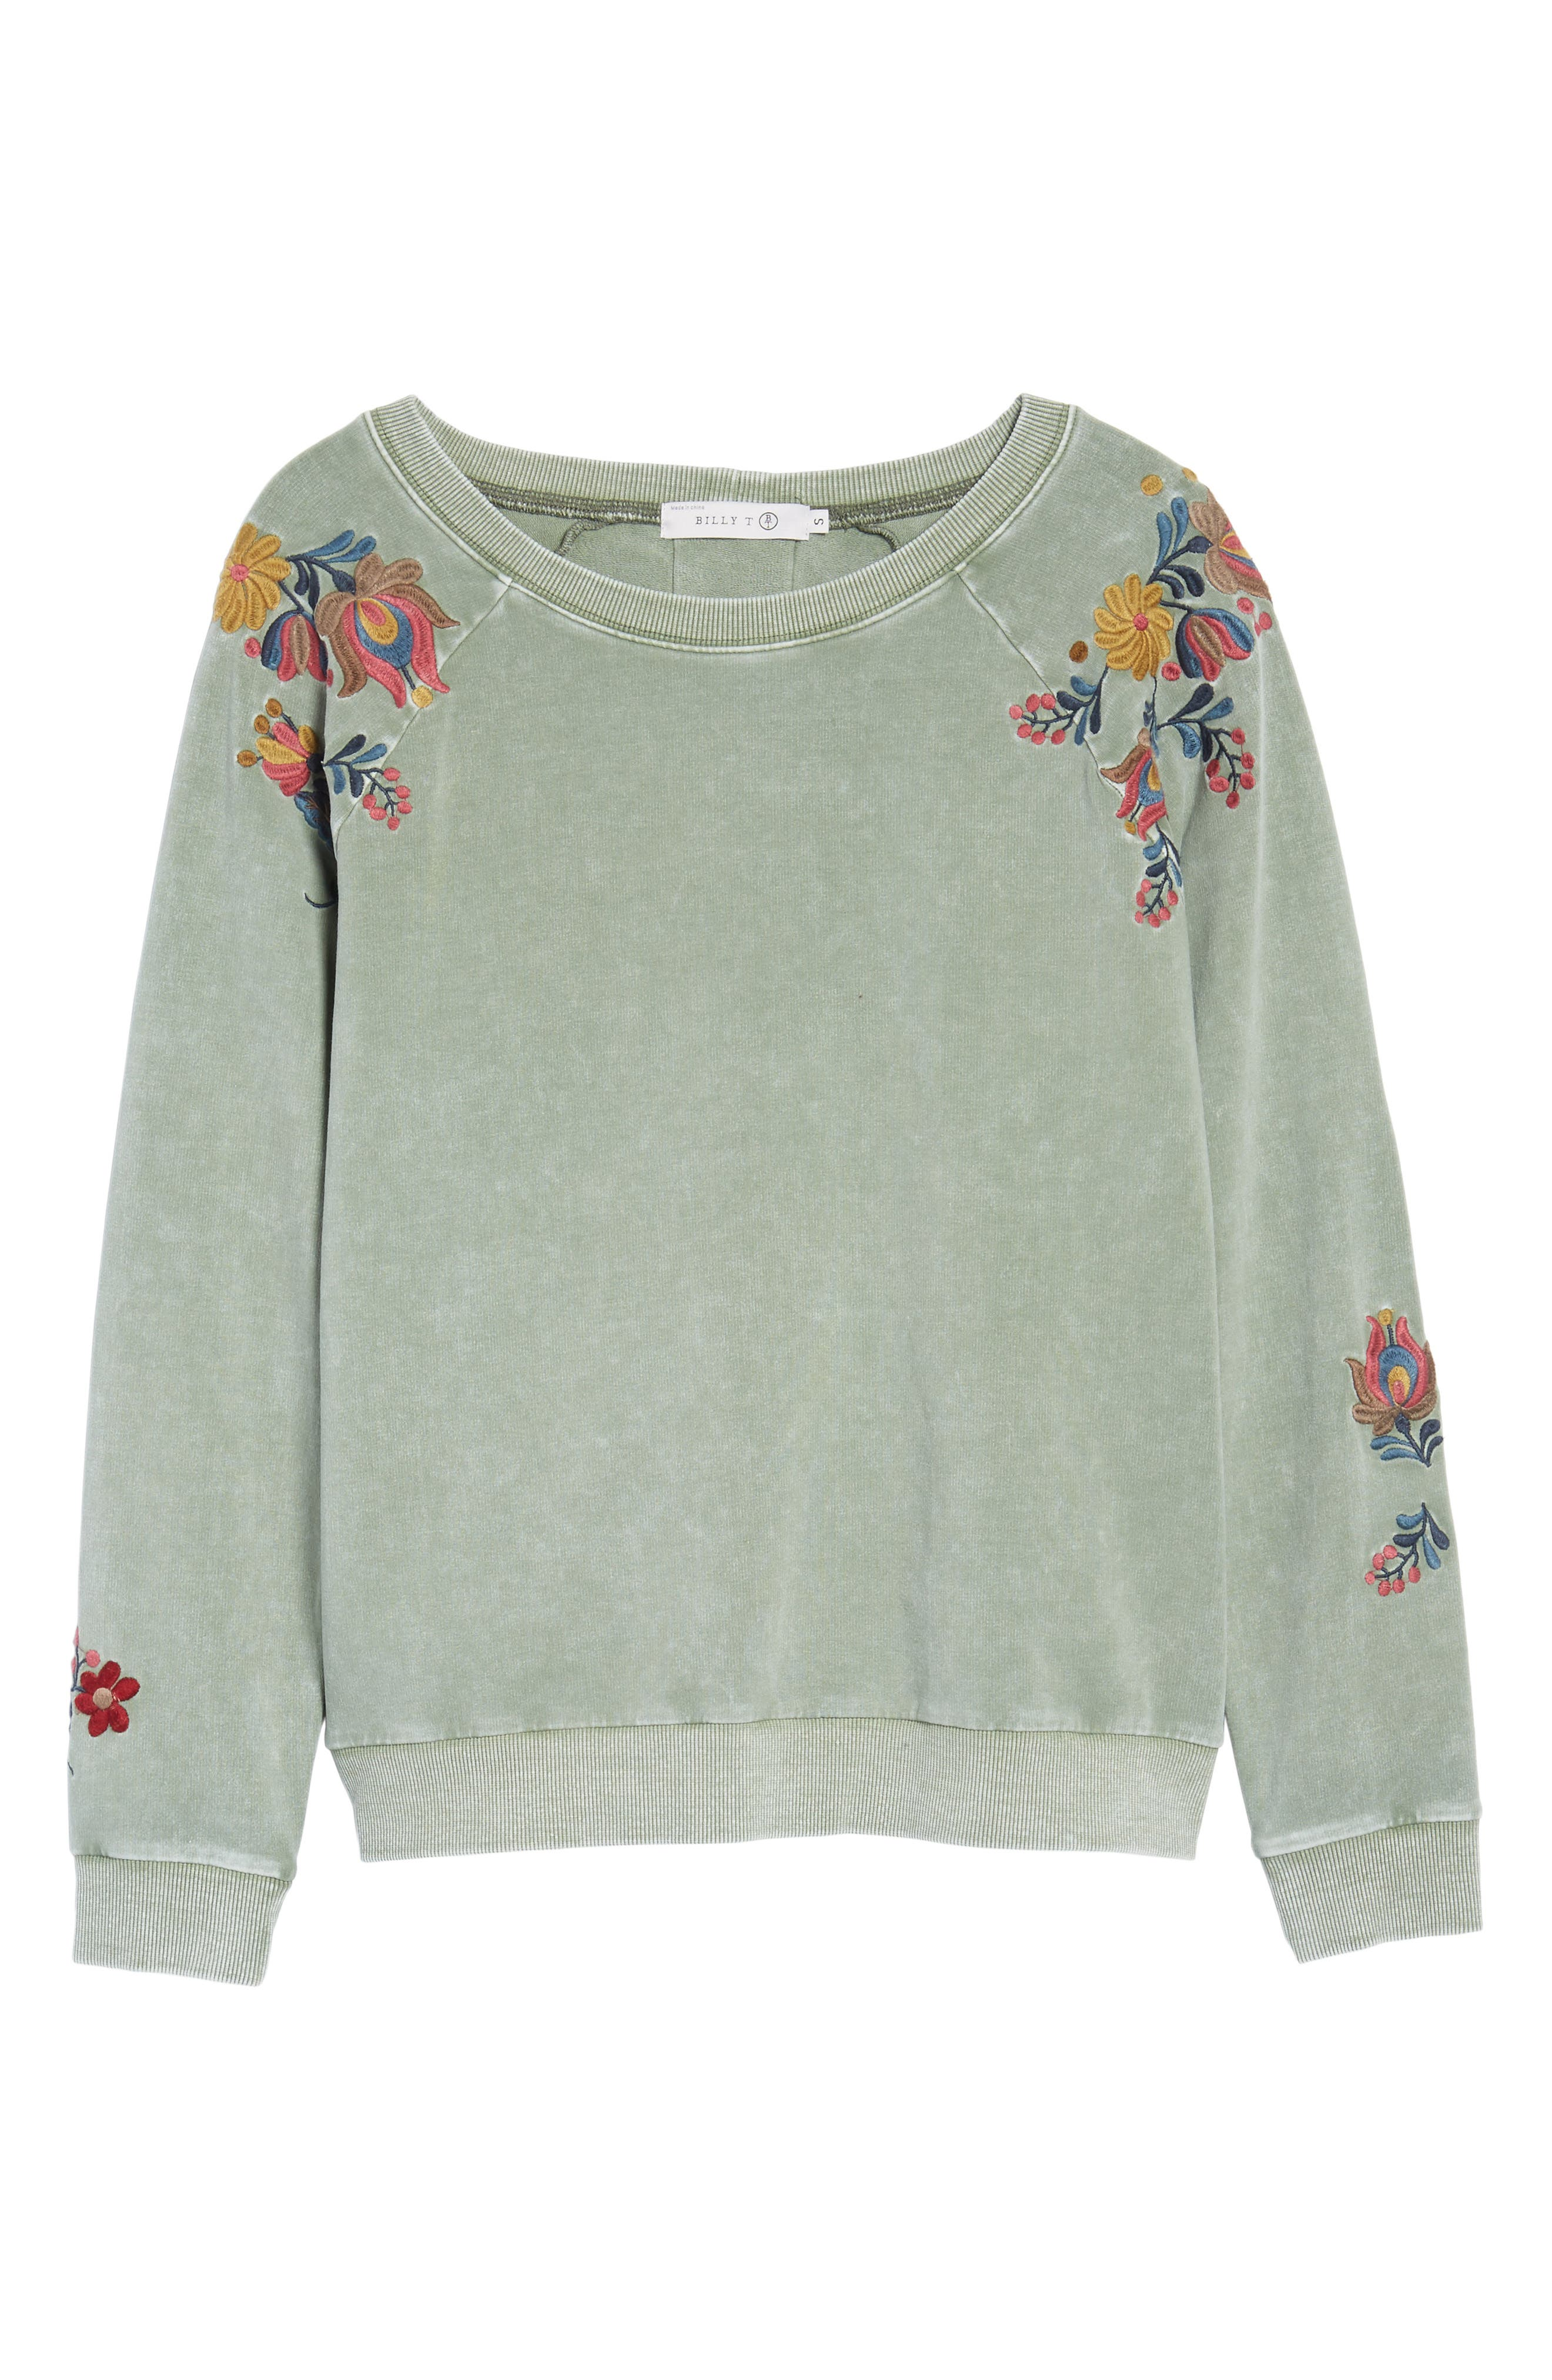 Embroidered Lace-Up Back Sweatshirt,                             Alternate thumbnail 6, color,                             Army